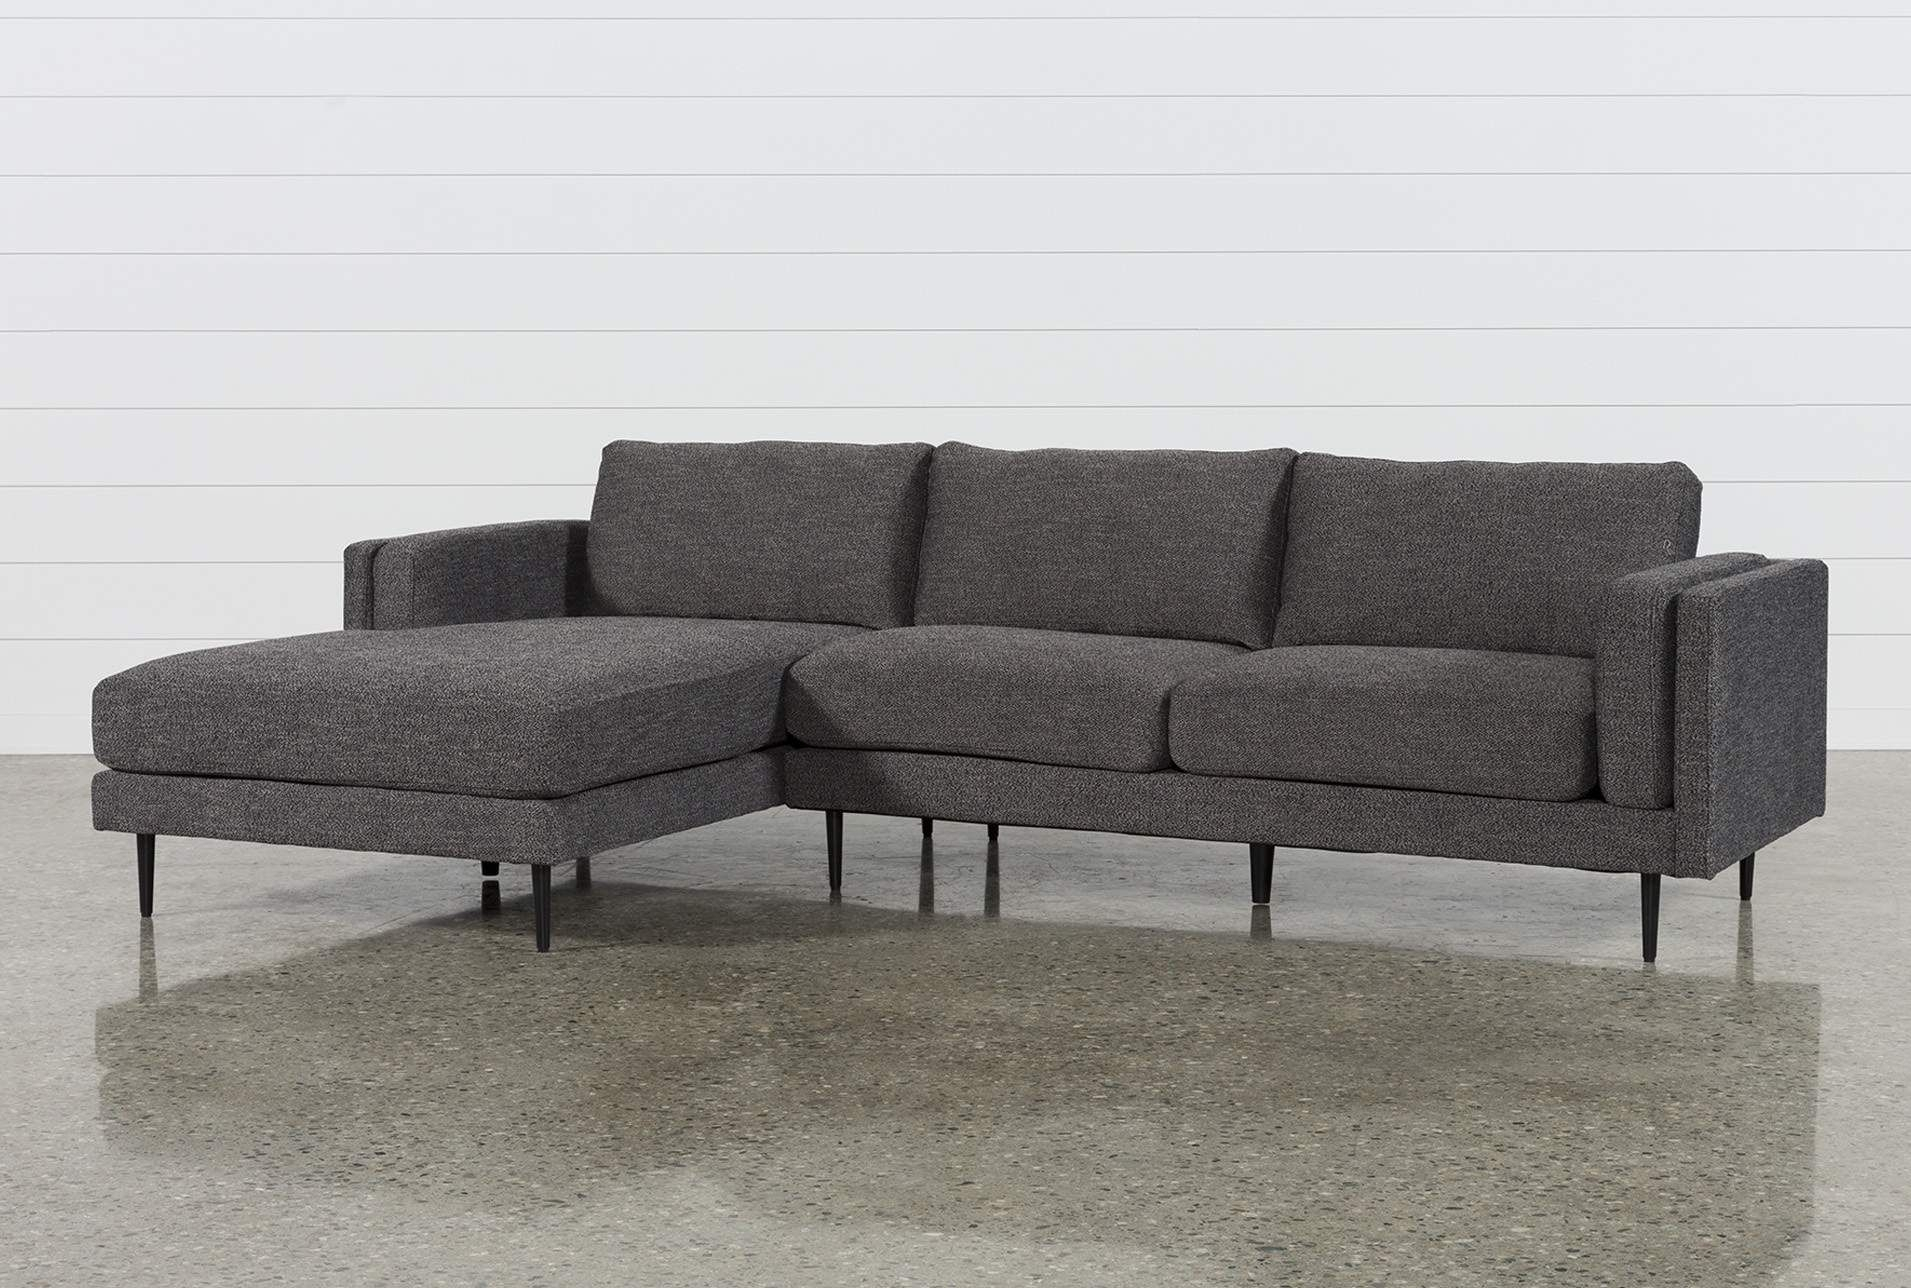 Aquarius Dark Grey 2 Piece Sectional W/laf Chaise | Pinterest In Aquarius Light Grey 2 Piece Sectionals With Raf Chaise (View 5 of 25)